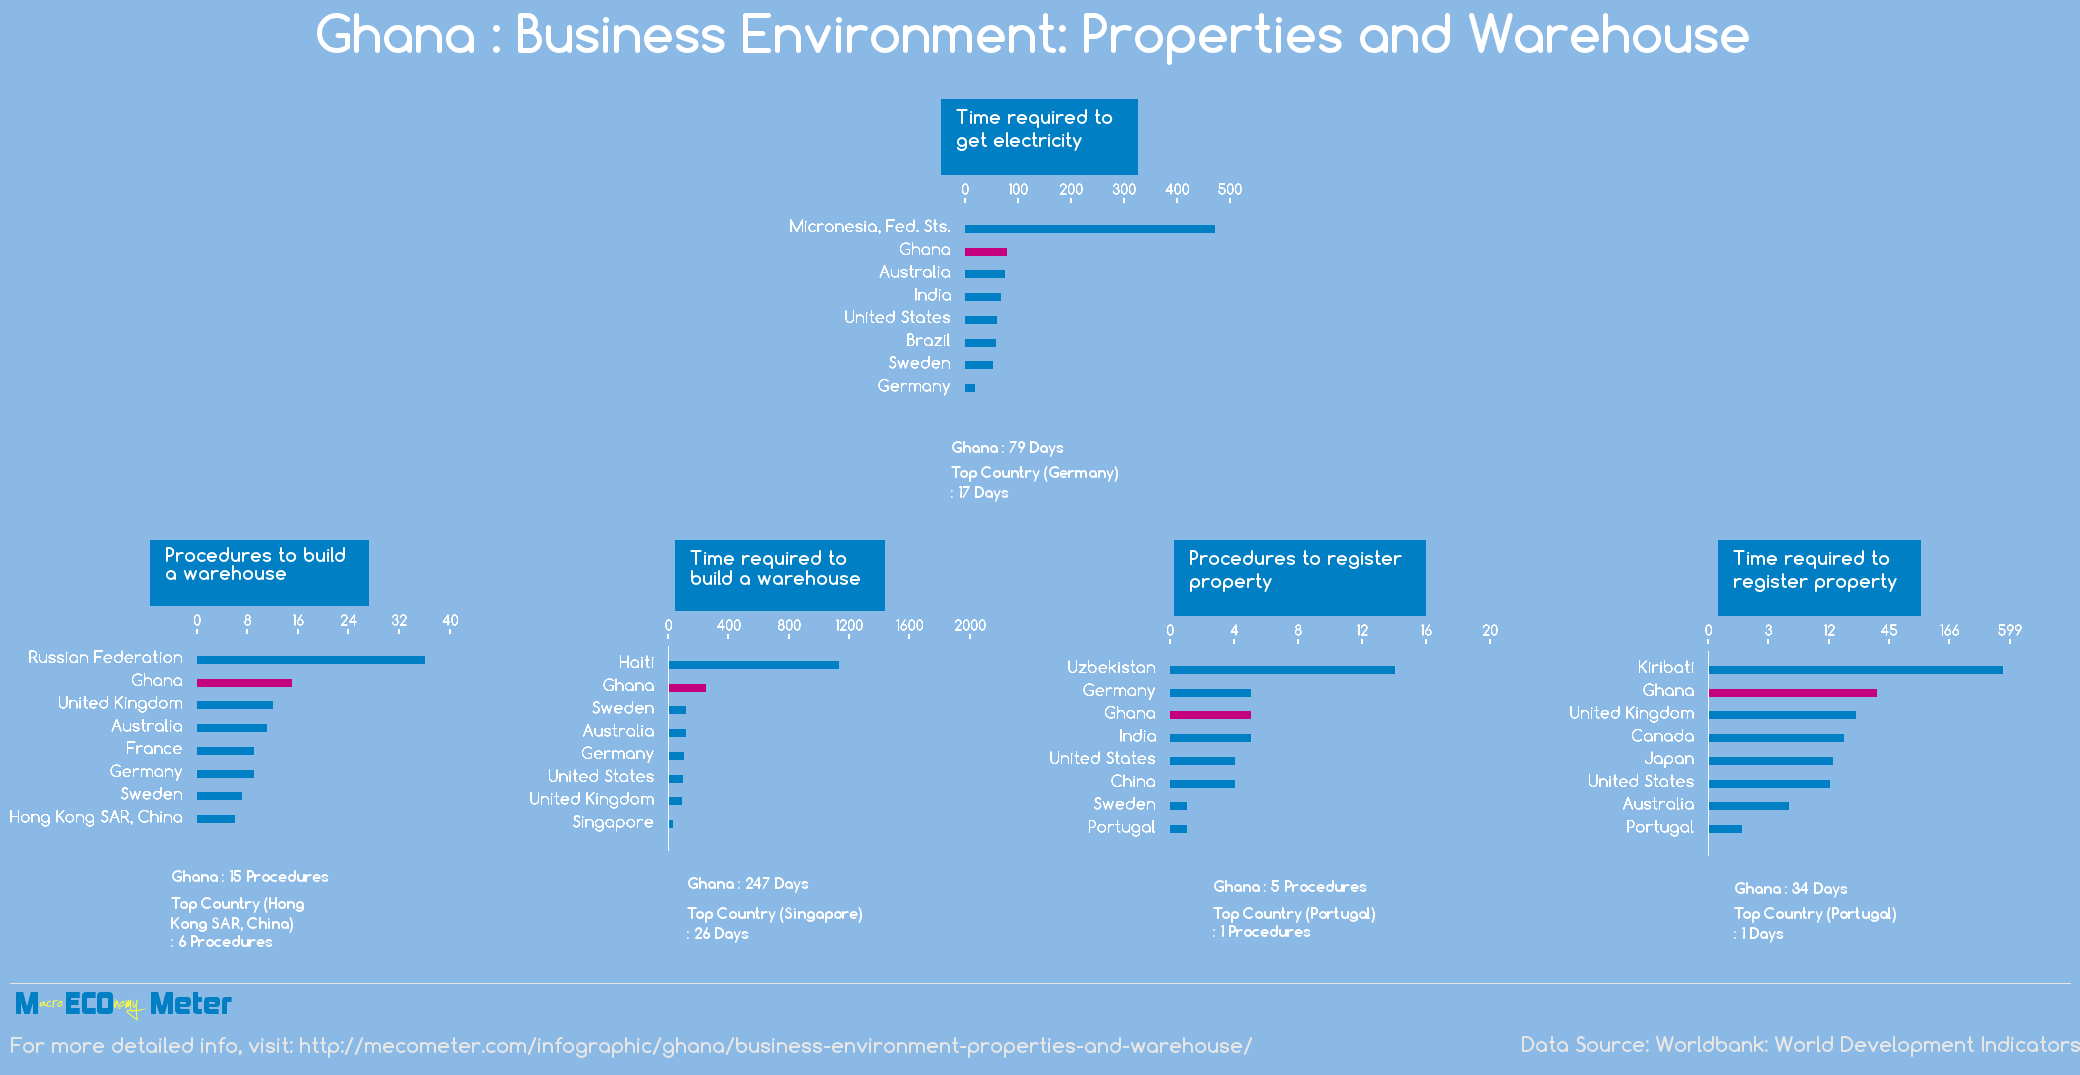 Ghana : Business Environment: Properties and Warehouse